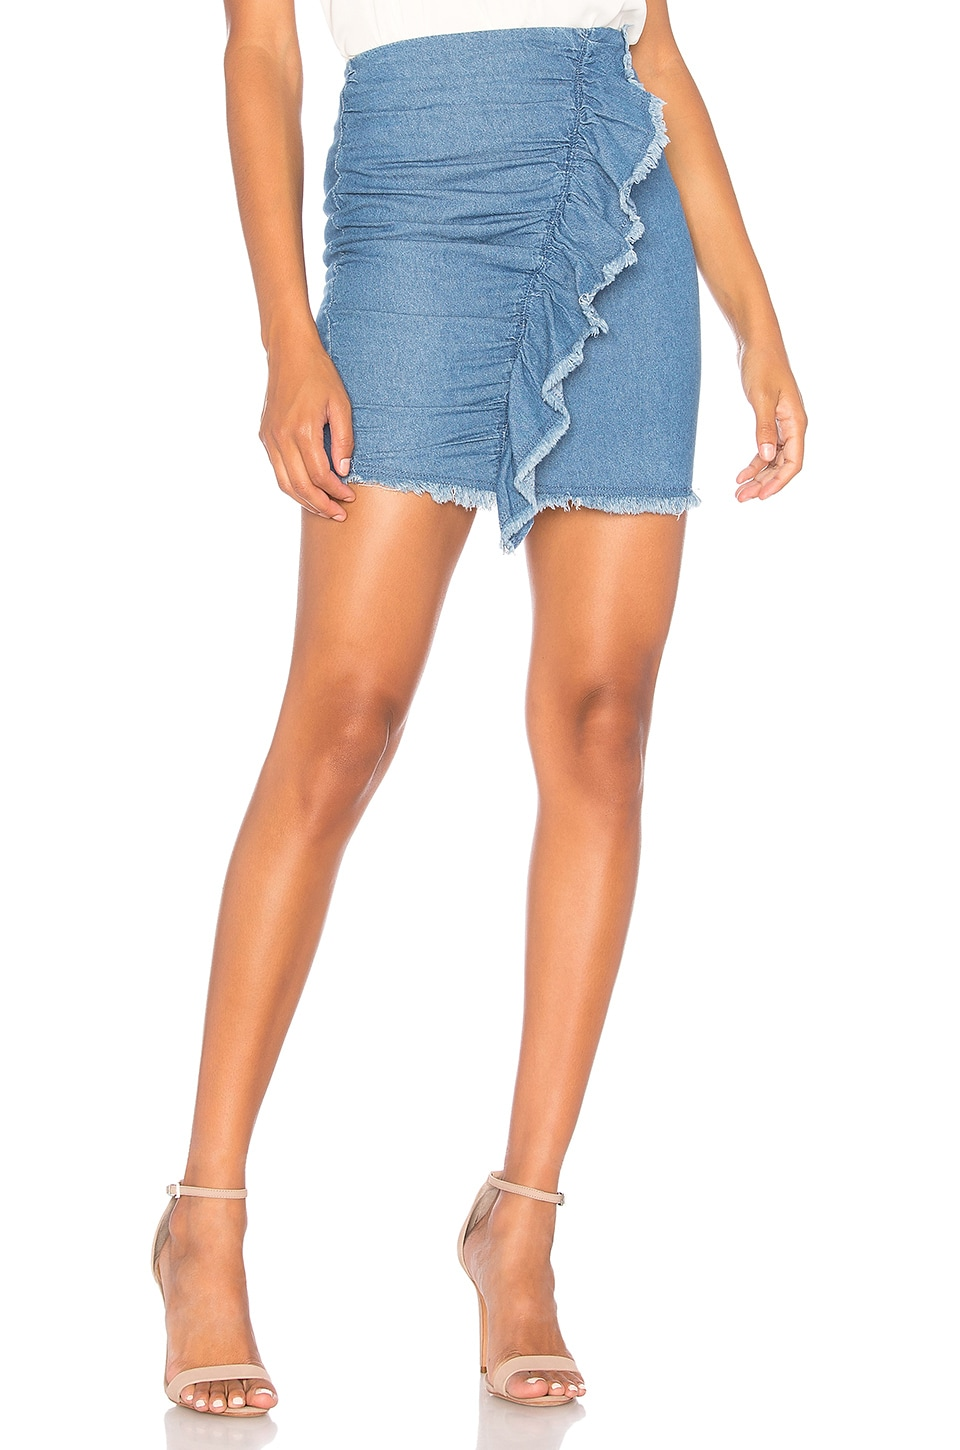 The Fifth Label Deja Vu Skirt in Washed Blue